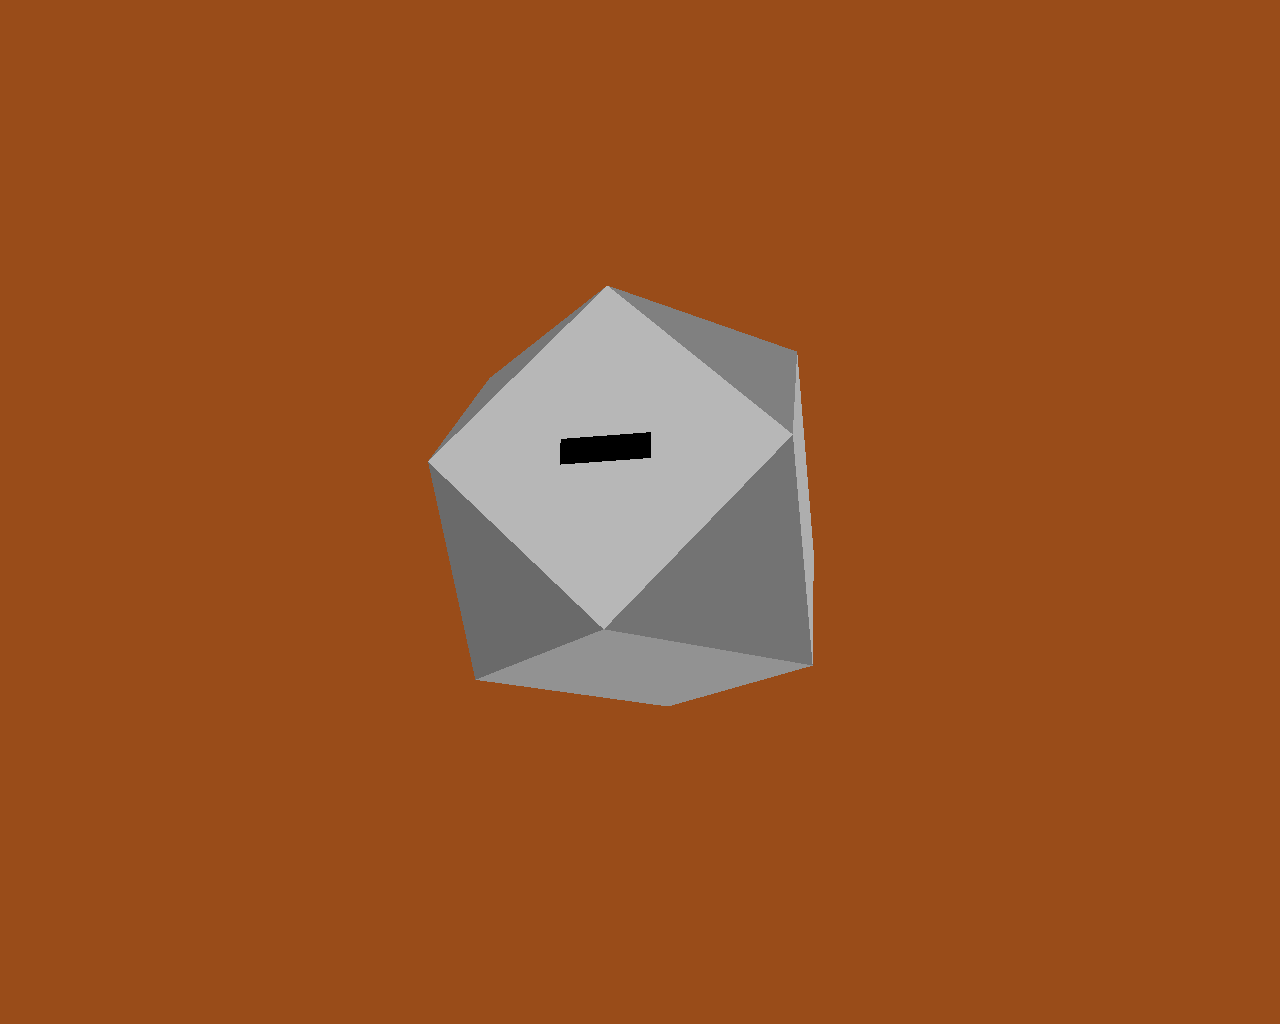 A truncated cube with entrance